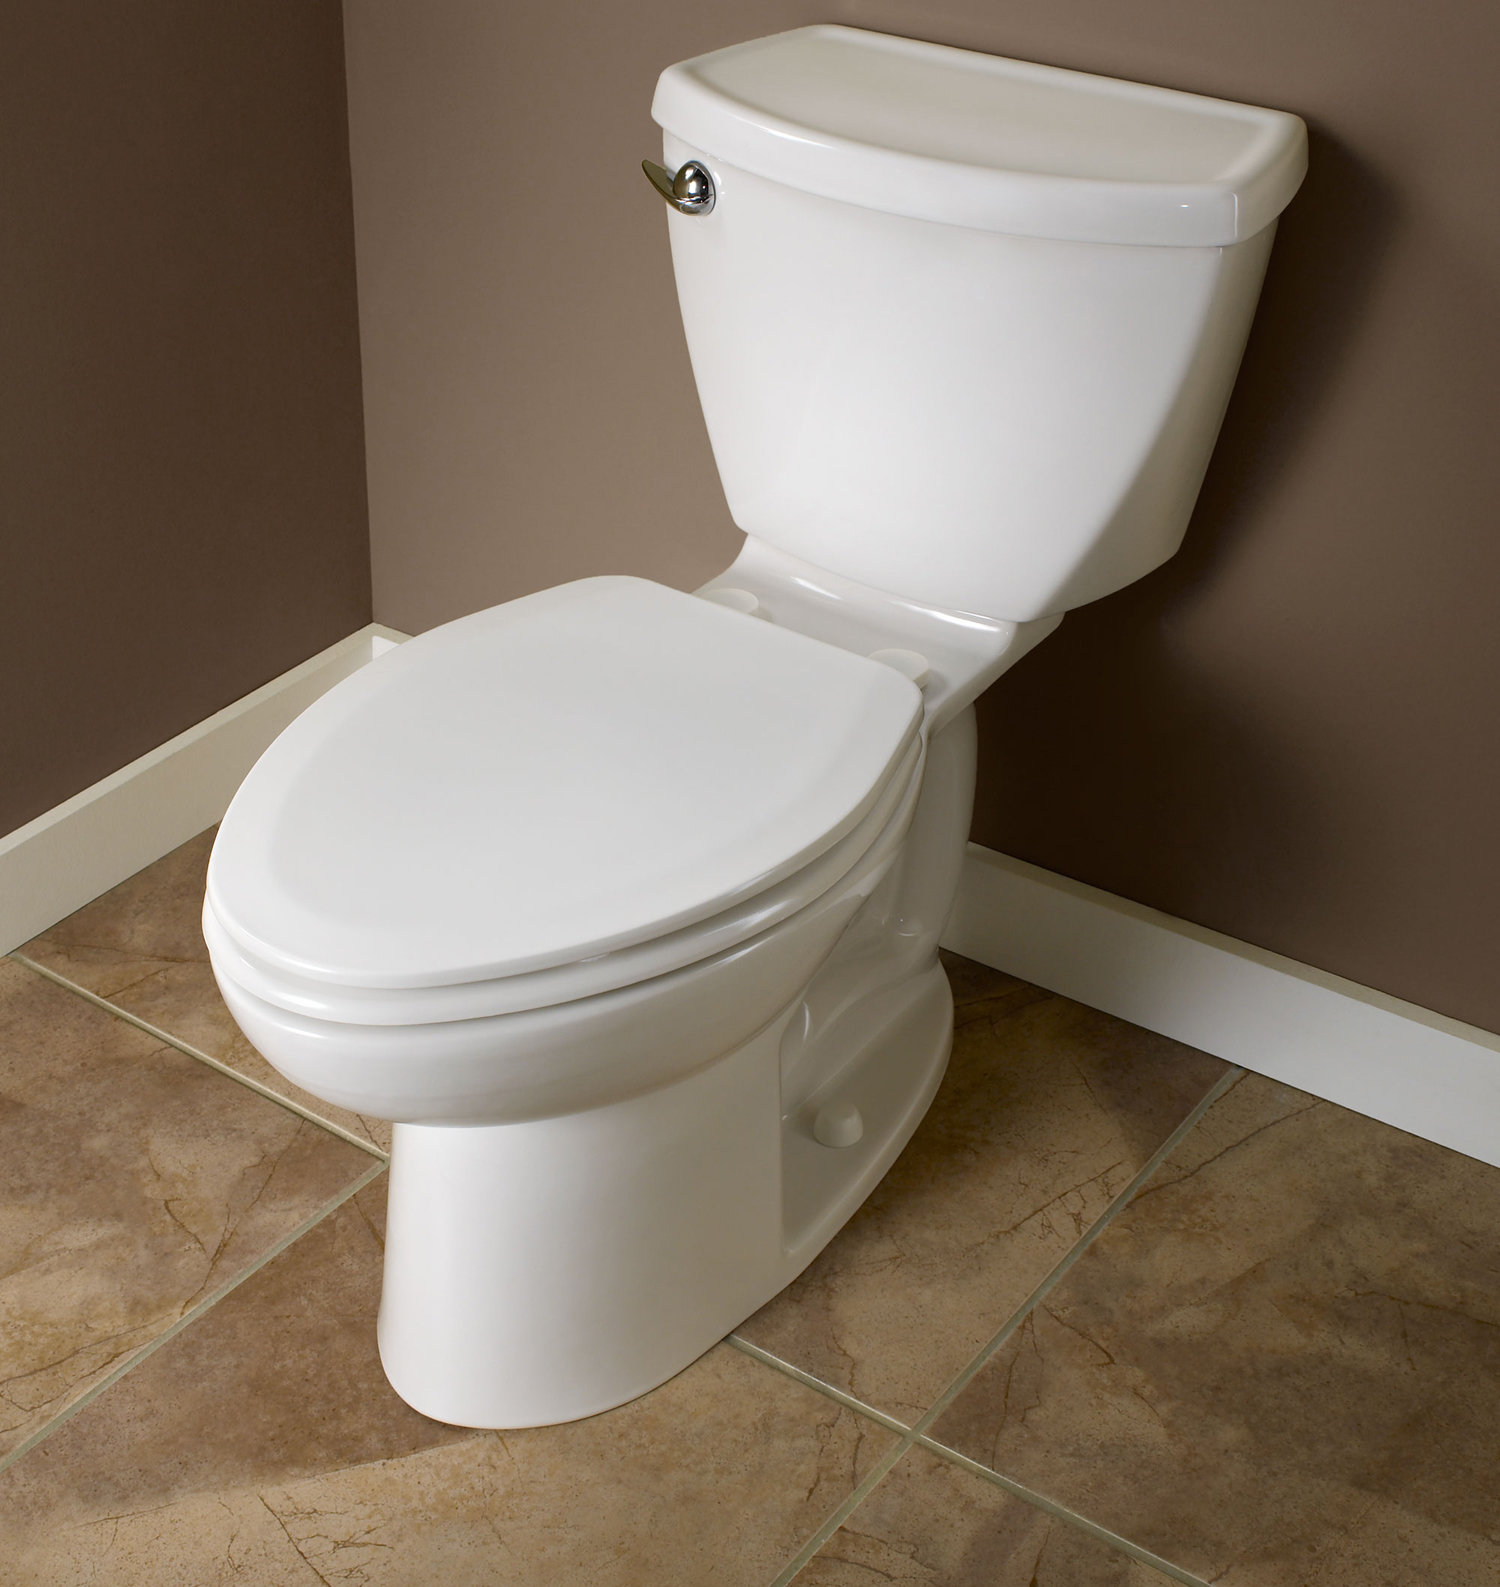 American Standard Toilet Seats >> American Standard 5321.110.222 EverClean Elongated Toilet Seat with Slow Close Snap-Off Hinges ...